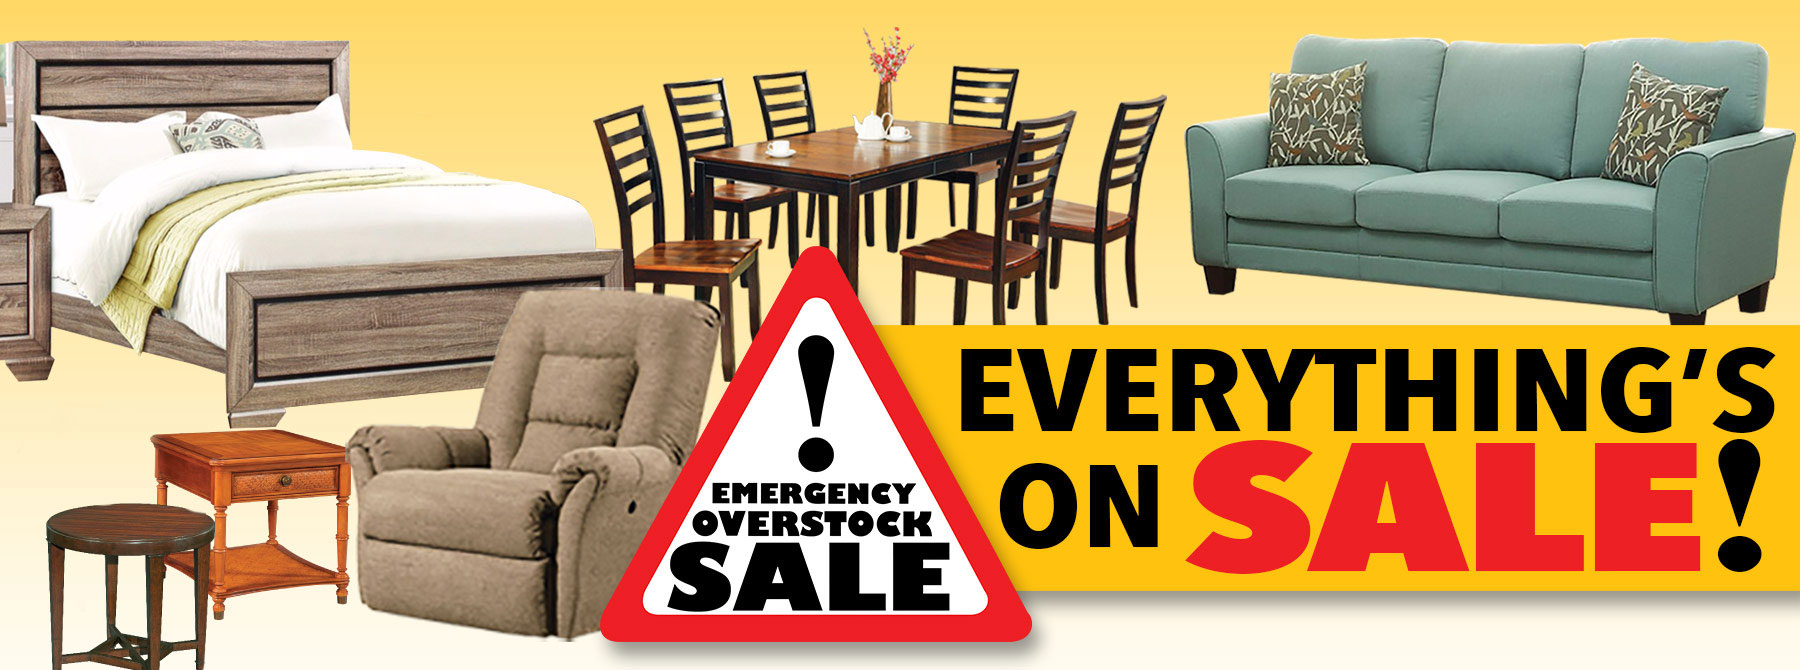 Emergency Overstock Sale